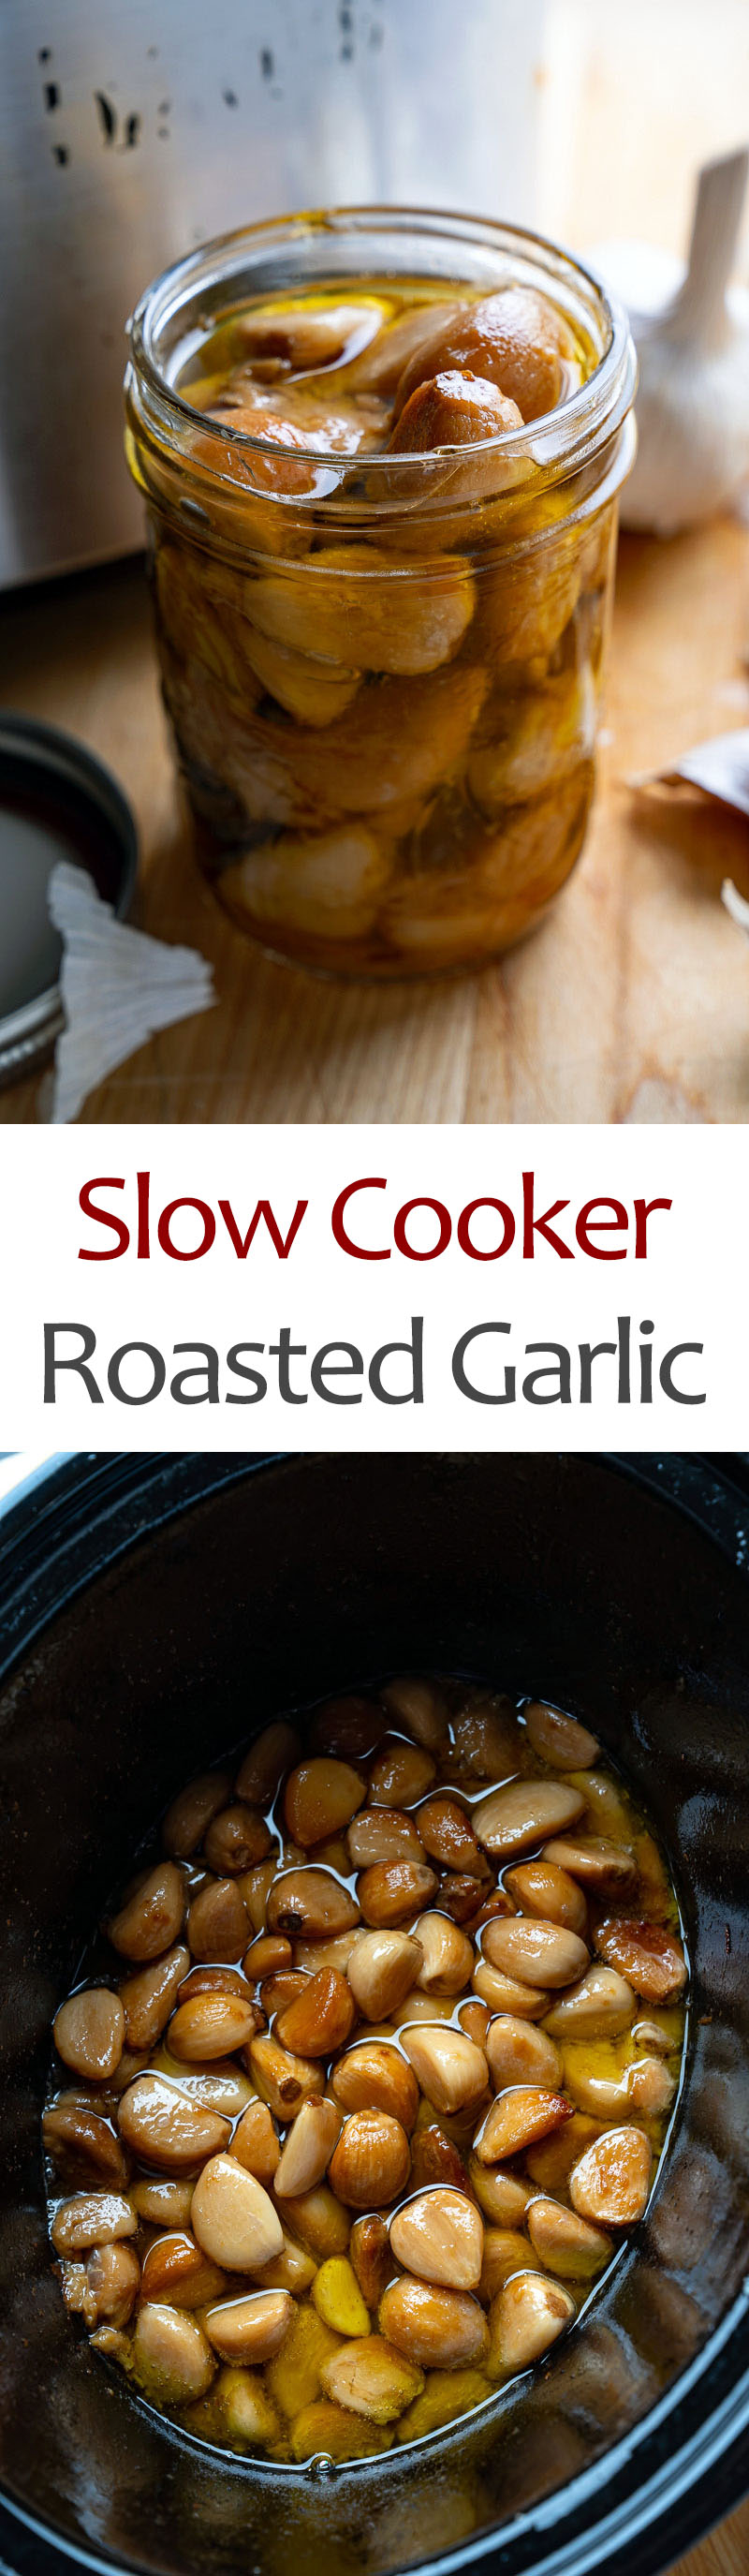 Slow Cooker Roasted Garlic